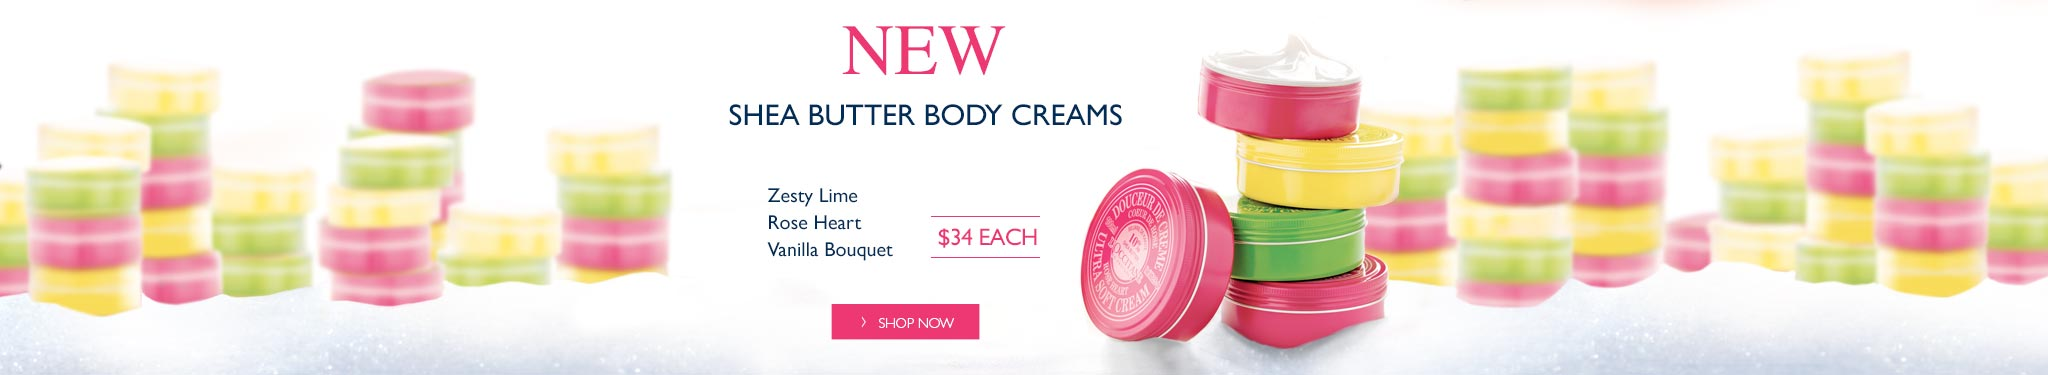 New Shea body creams